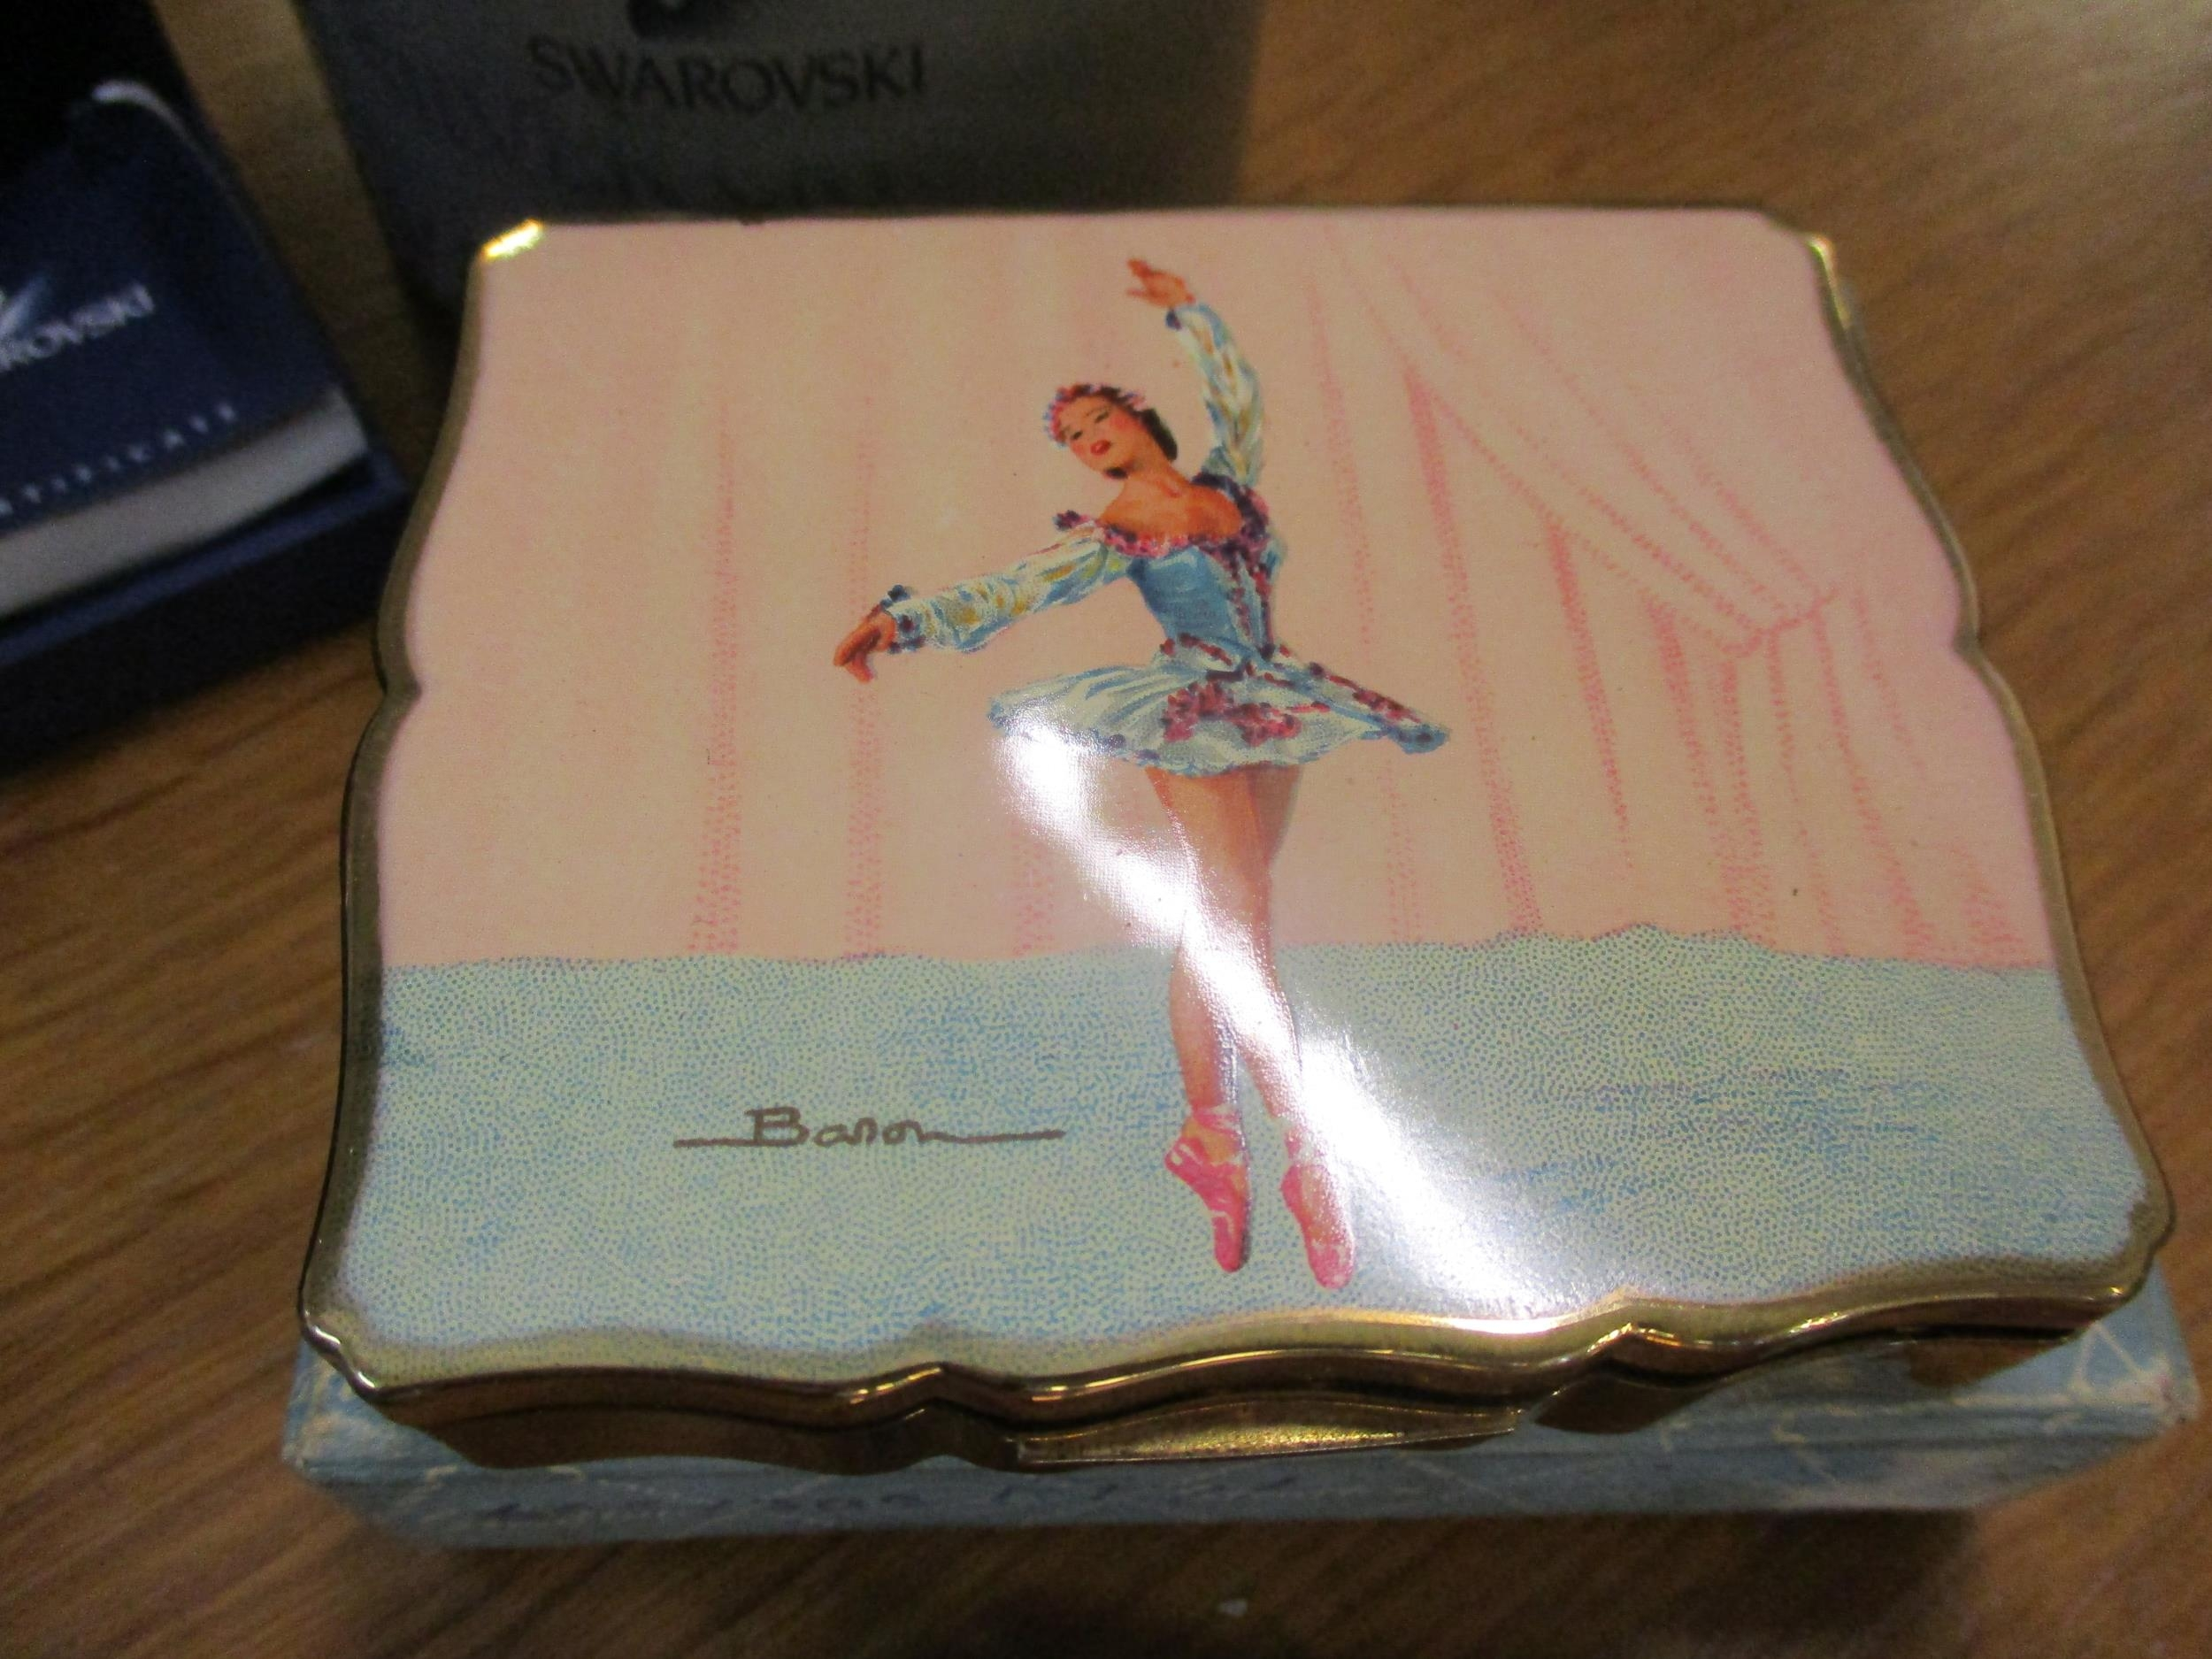 A small quantity of collectibles to include a Stratton compact with a painted image of a ballerina - Image 4 of 6